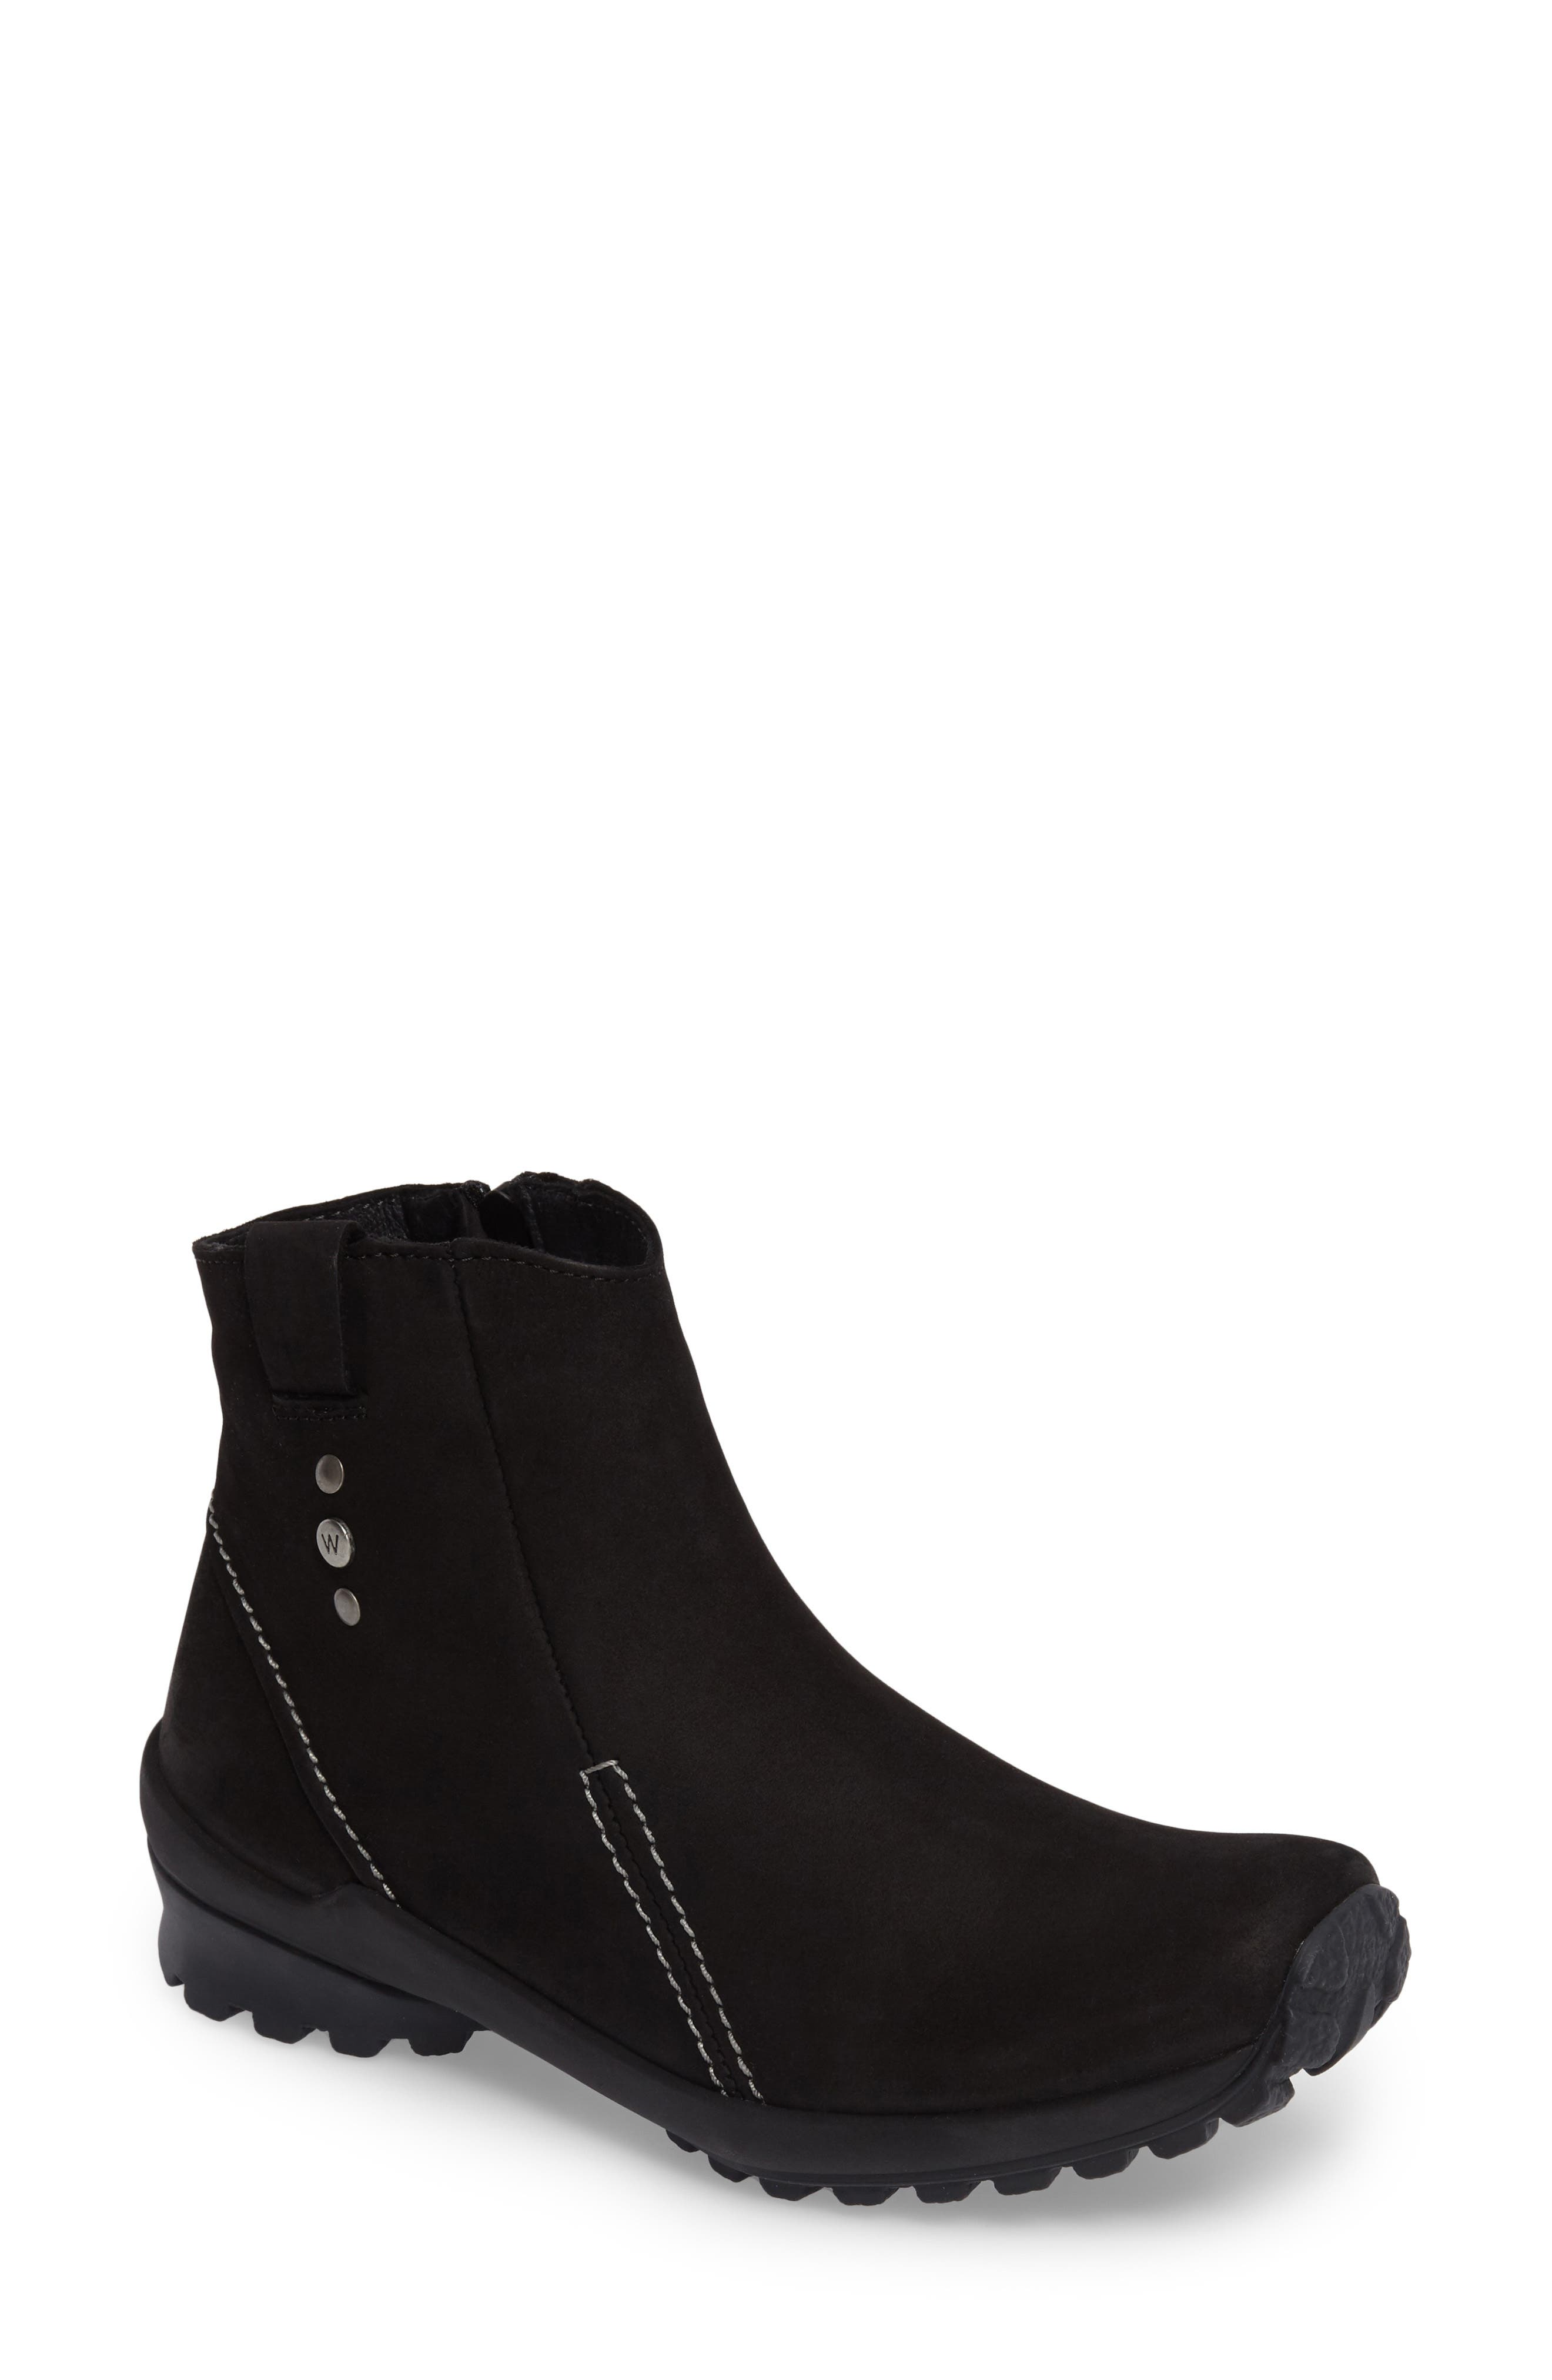 Wolky Zion Waterproof Insulated Winter Boot - Black